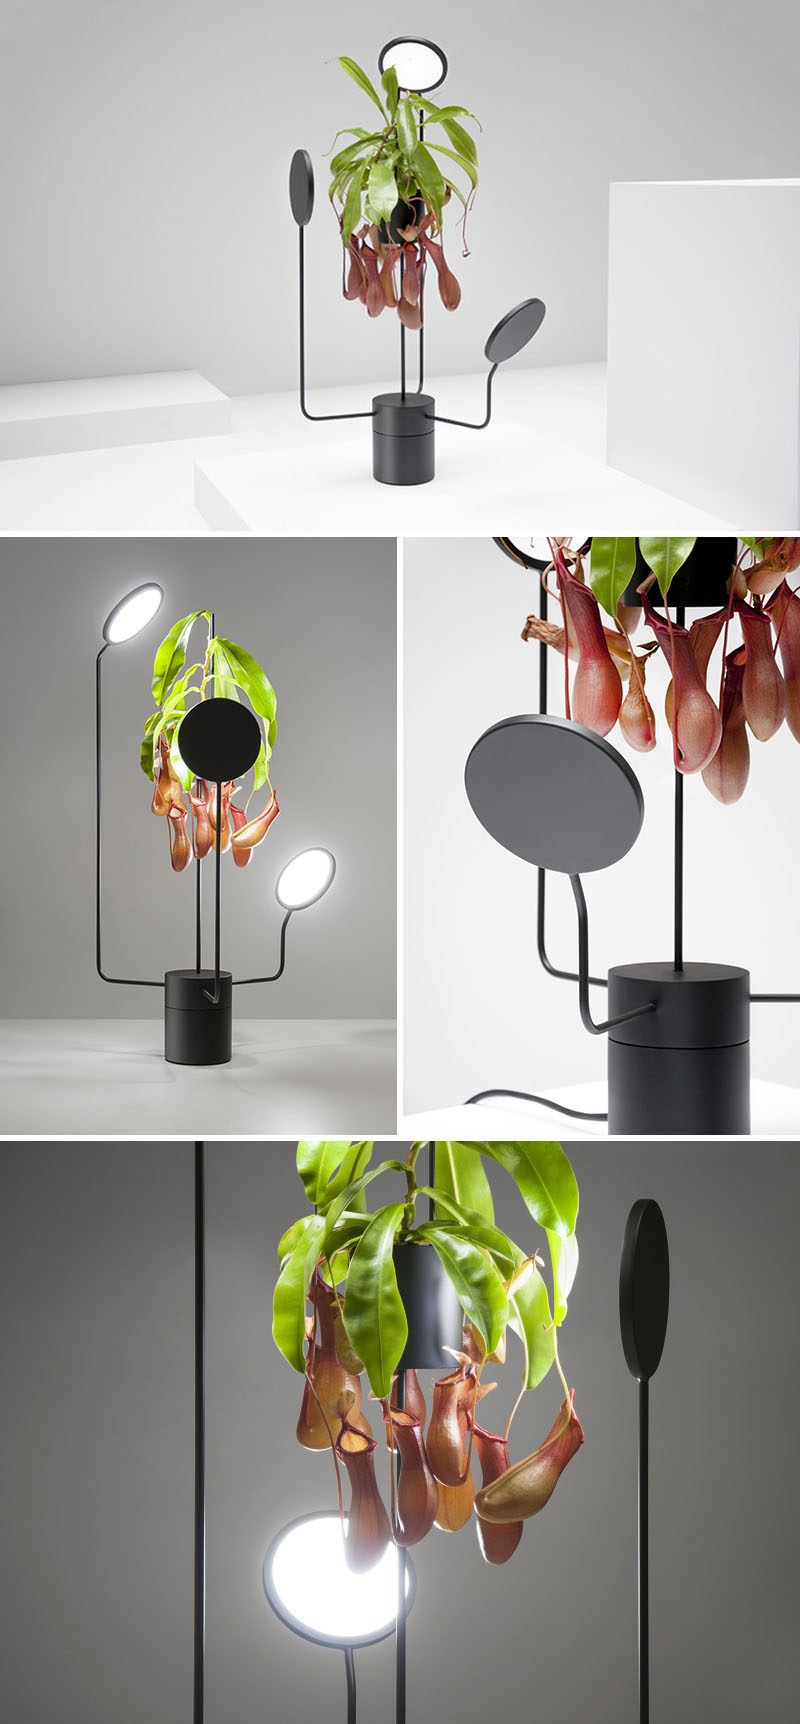 This minimalist and sculptural matte black planter has a flower pot on a pedestal, has lights that slowly rotate around the plant, providing an even distribution of light to the plant.